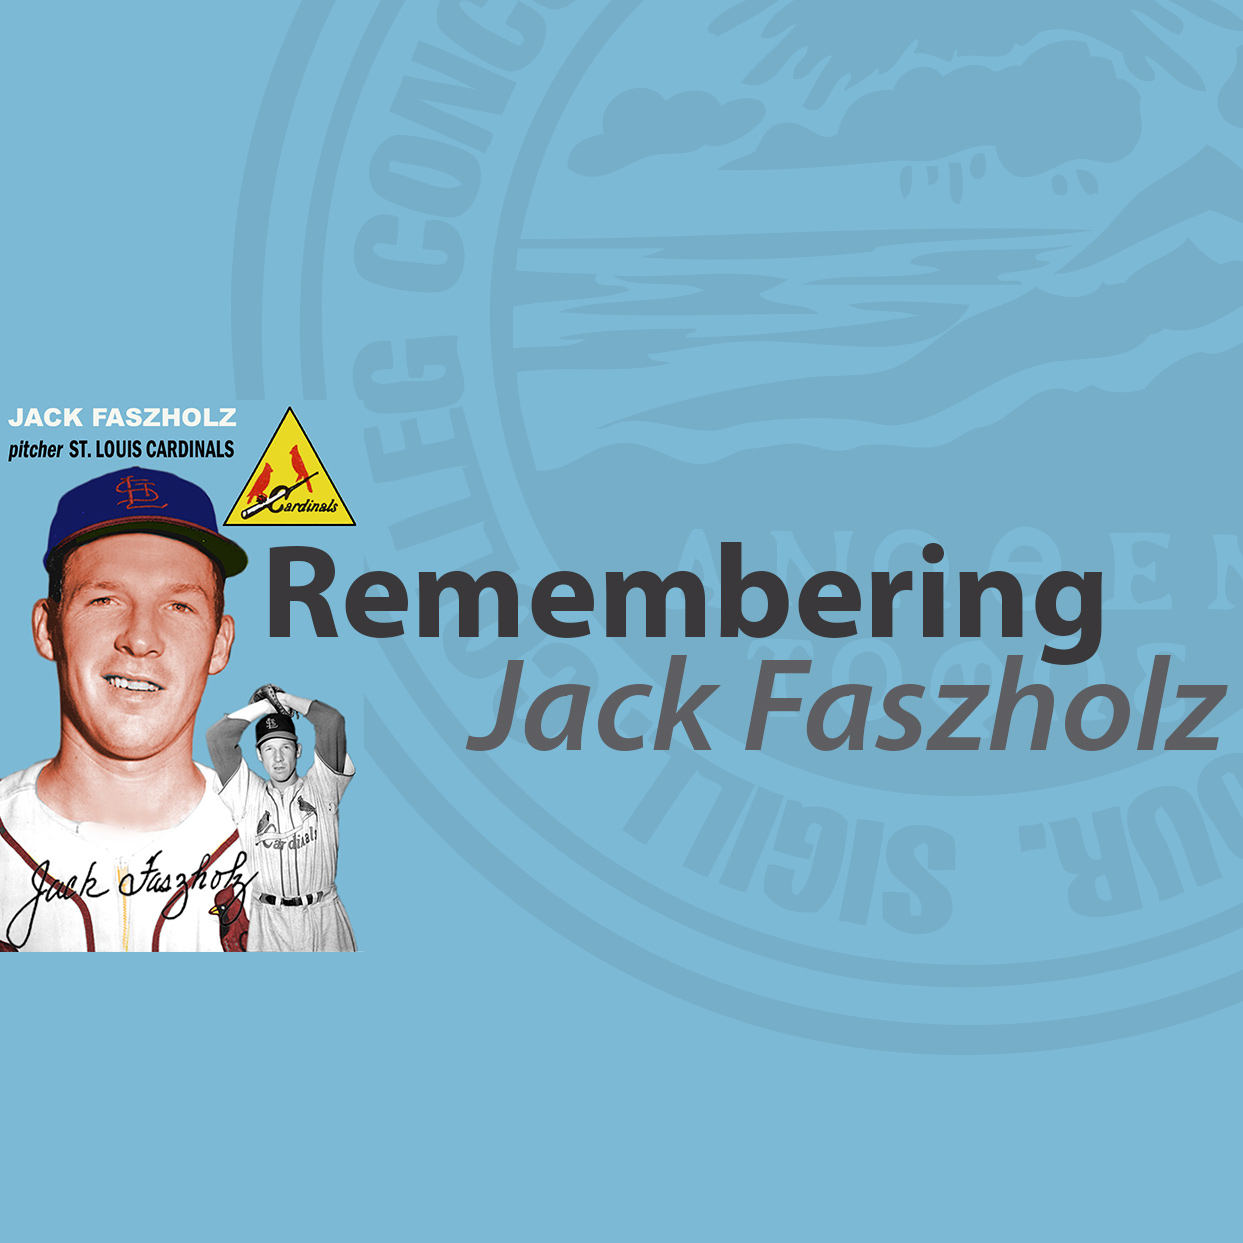 Remembering Jack Faszholz